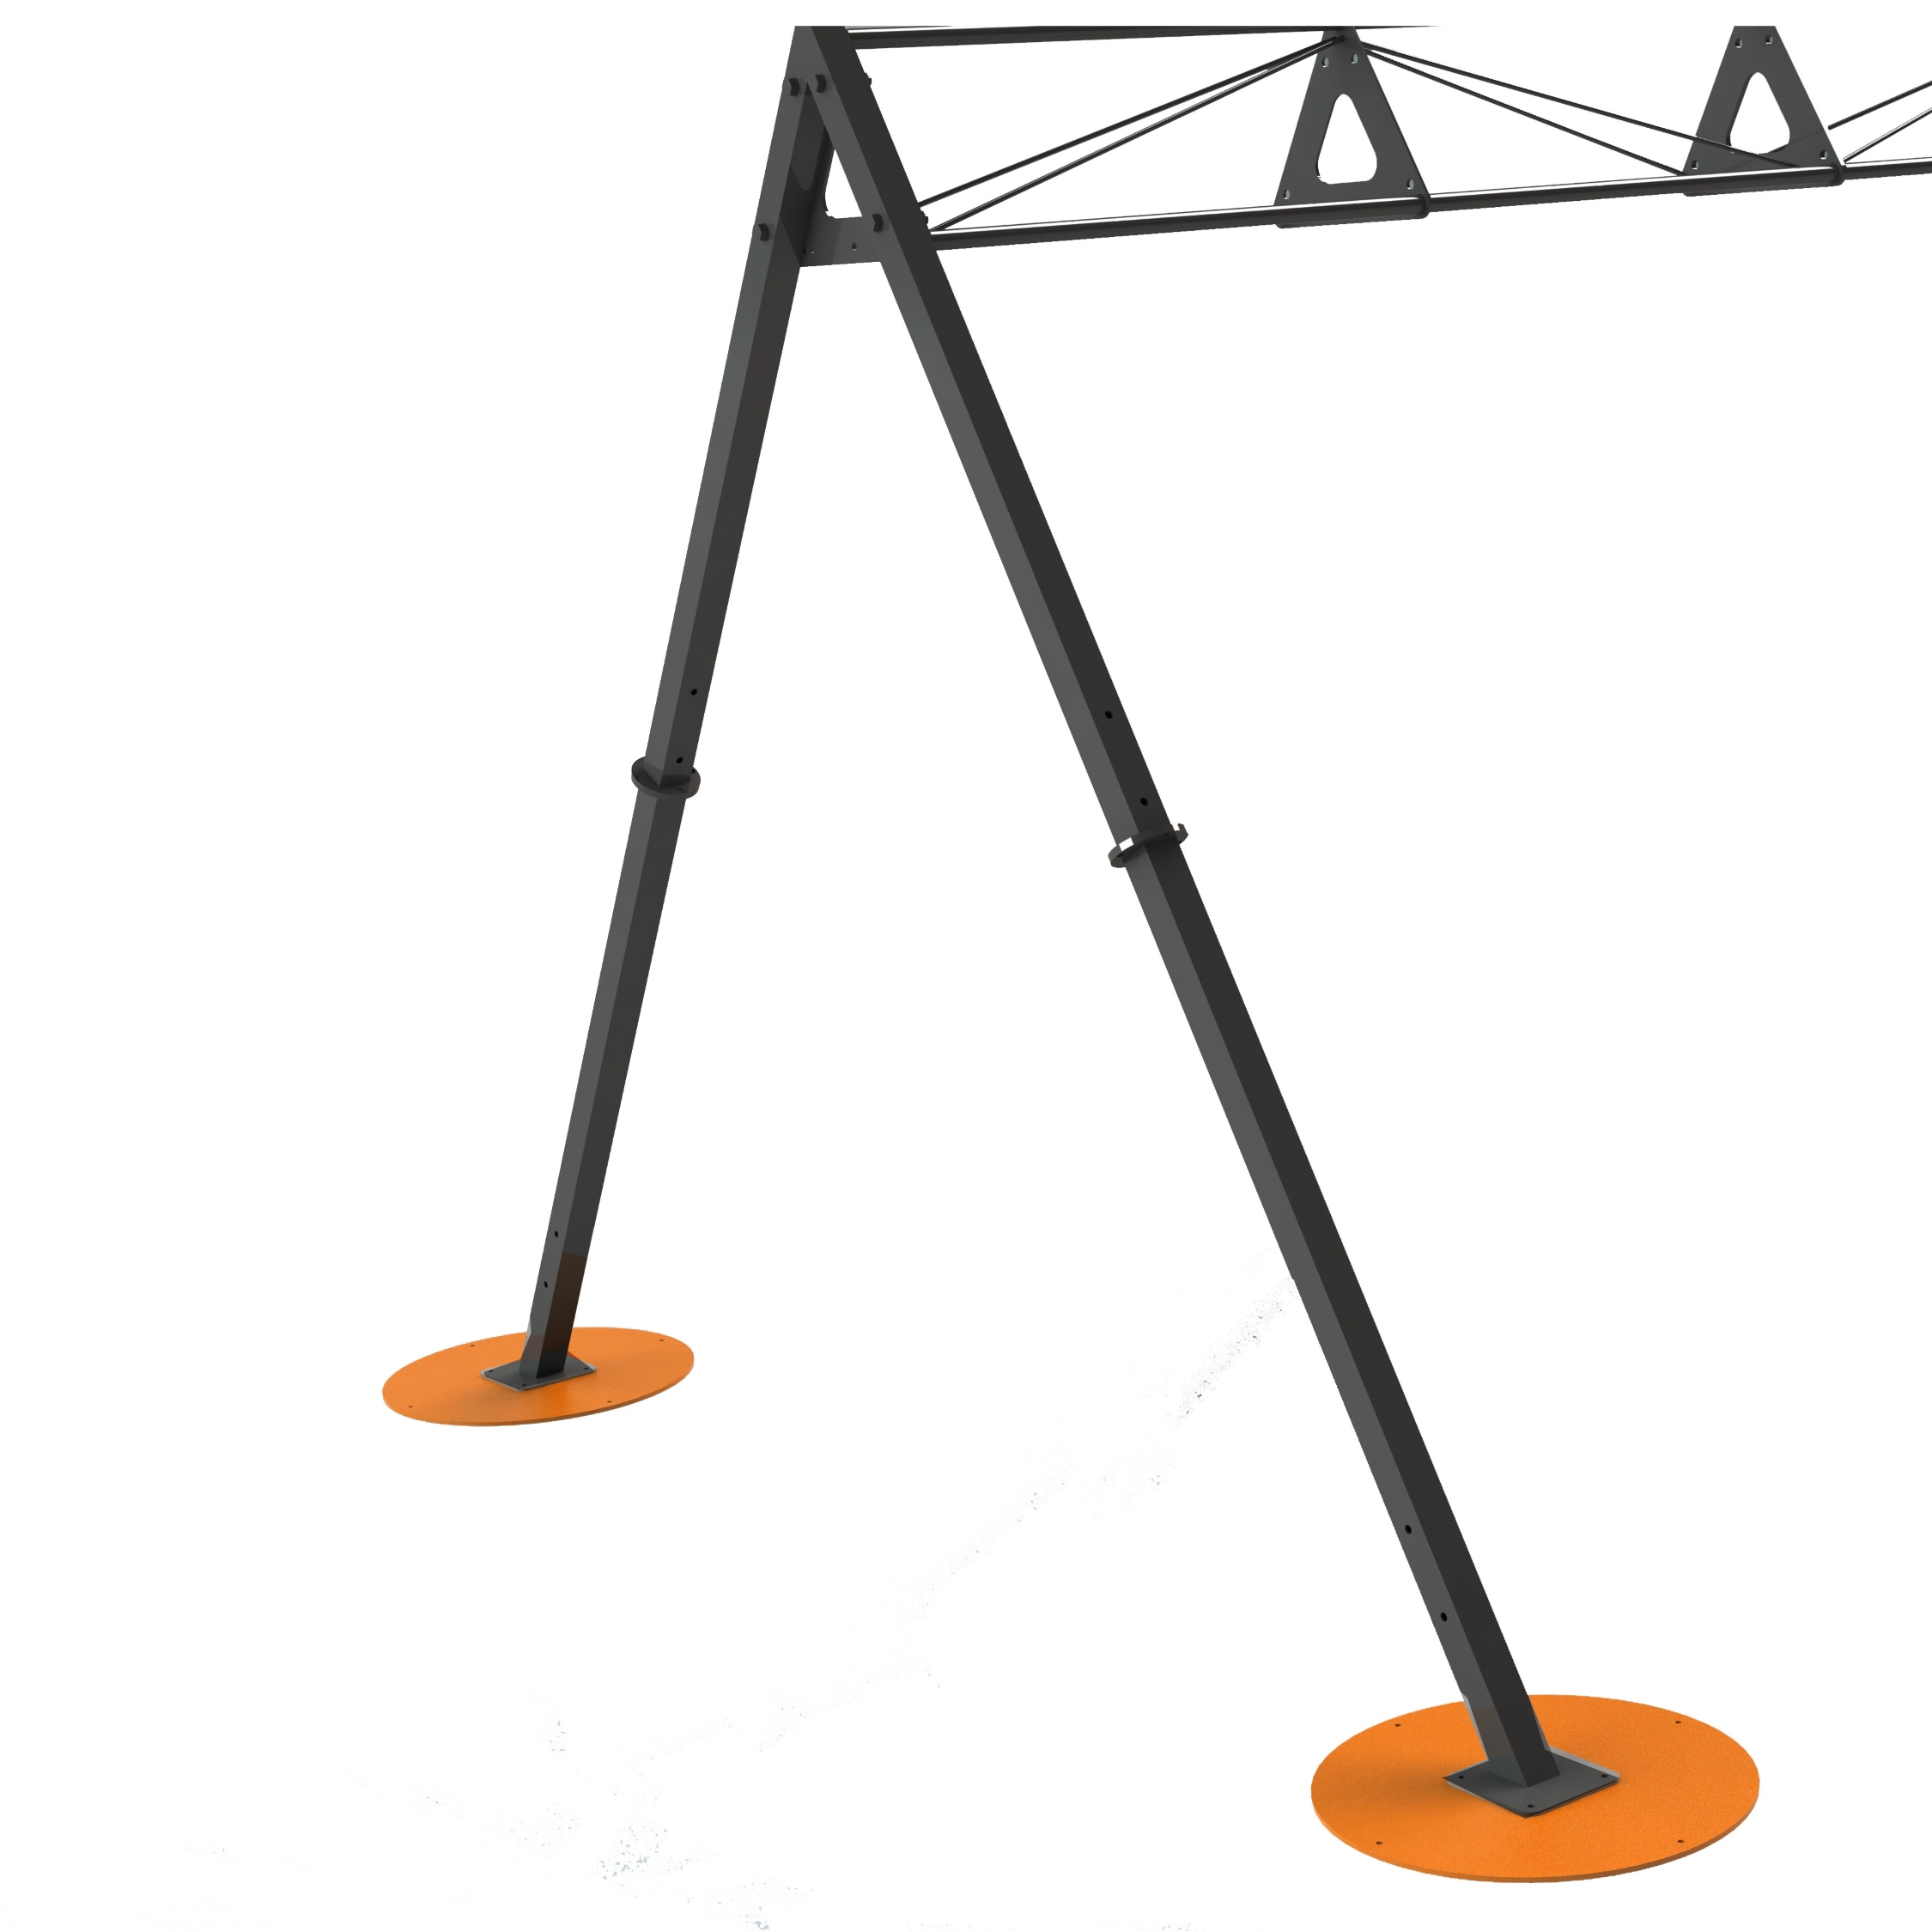 Stability Plate for A-Frame